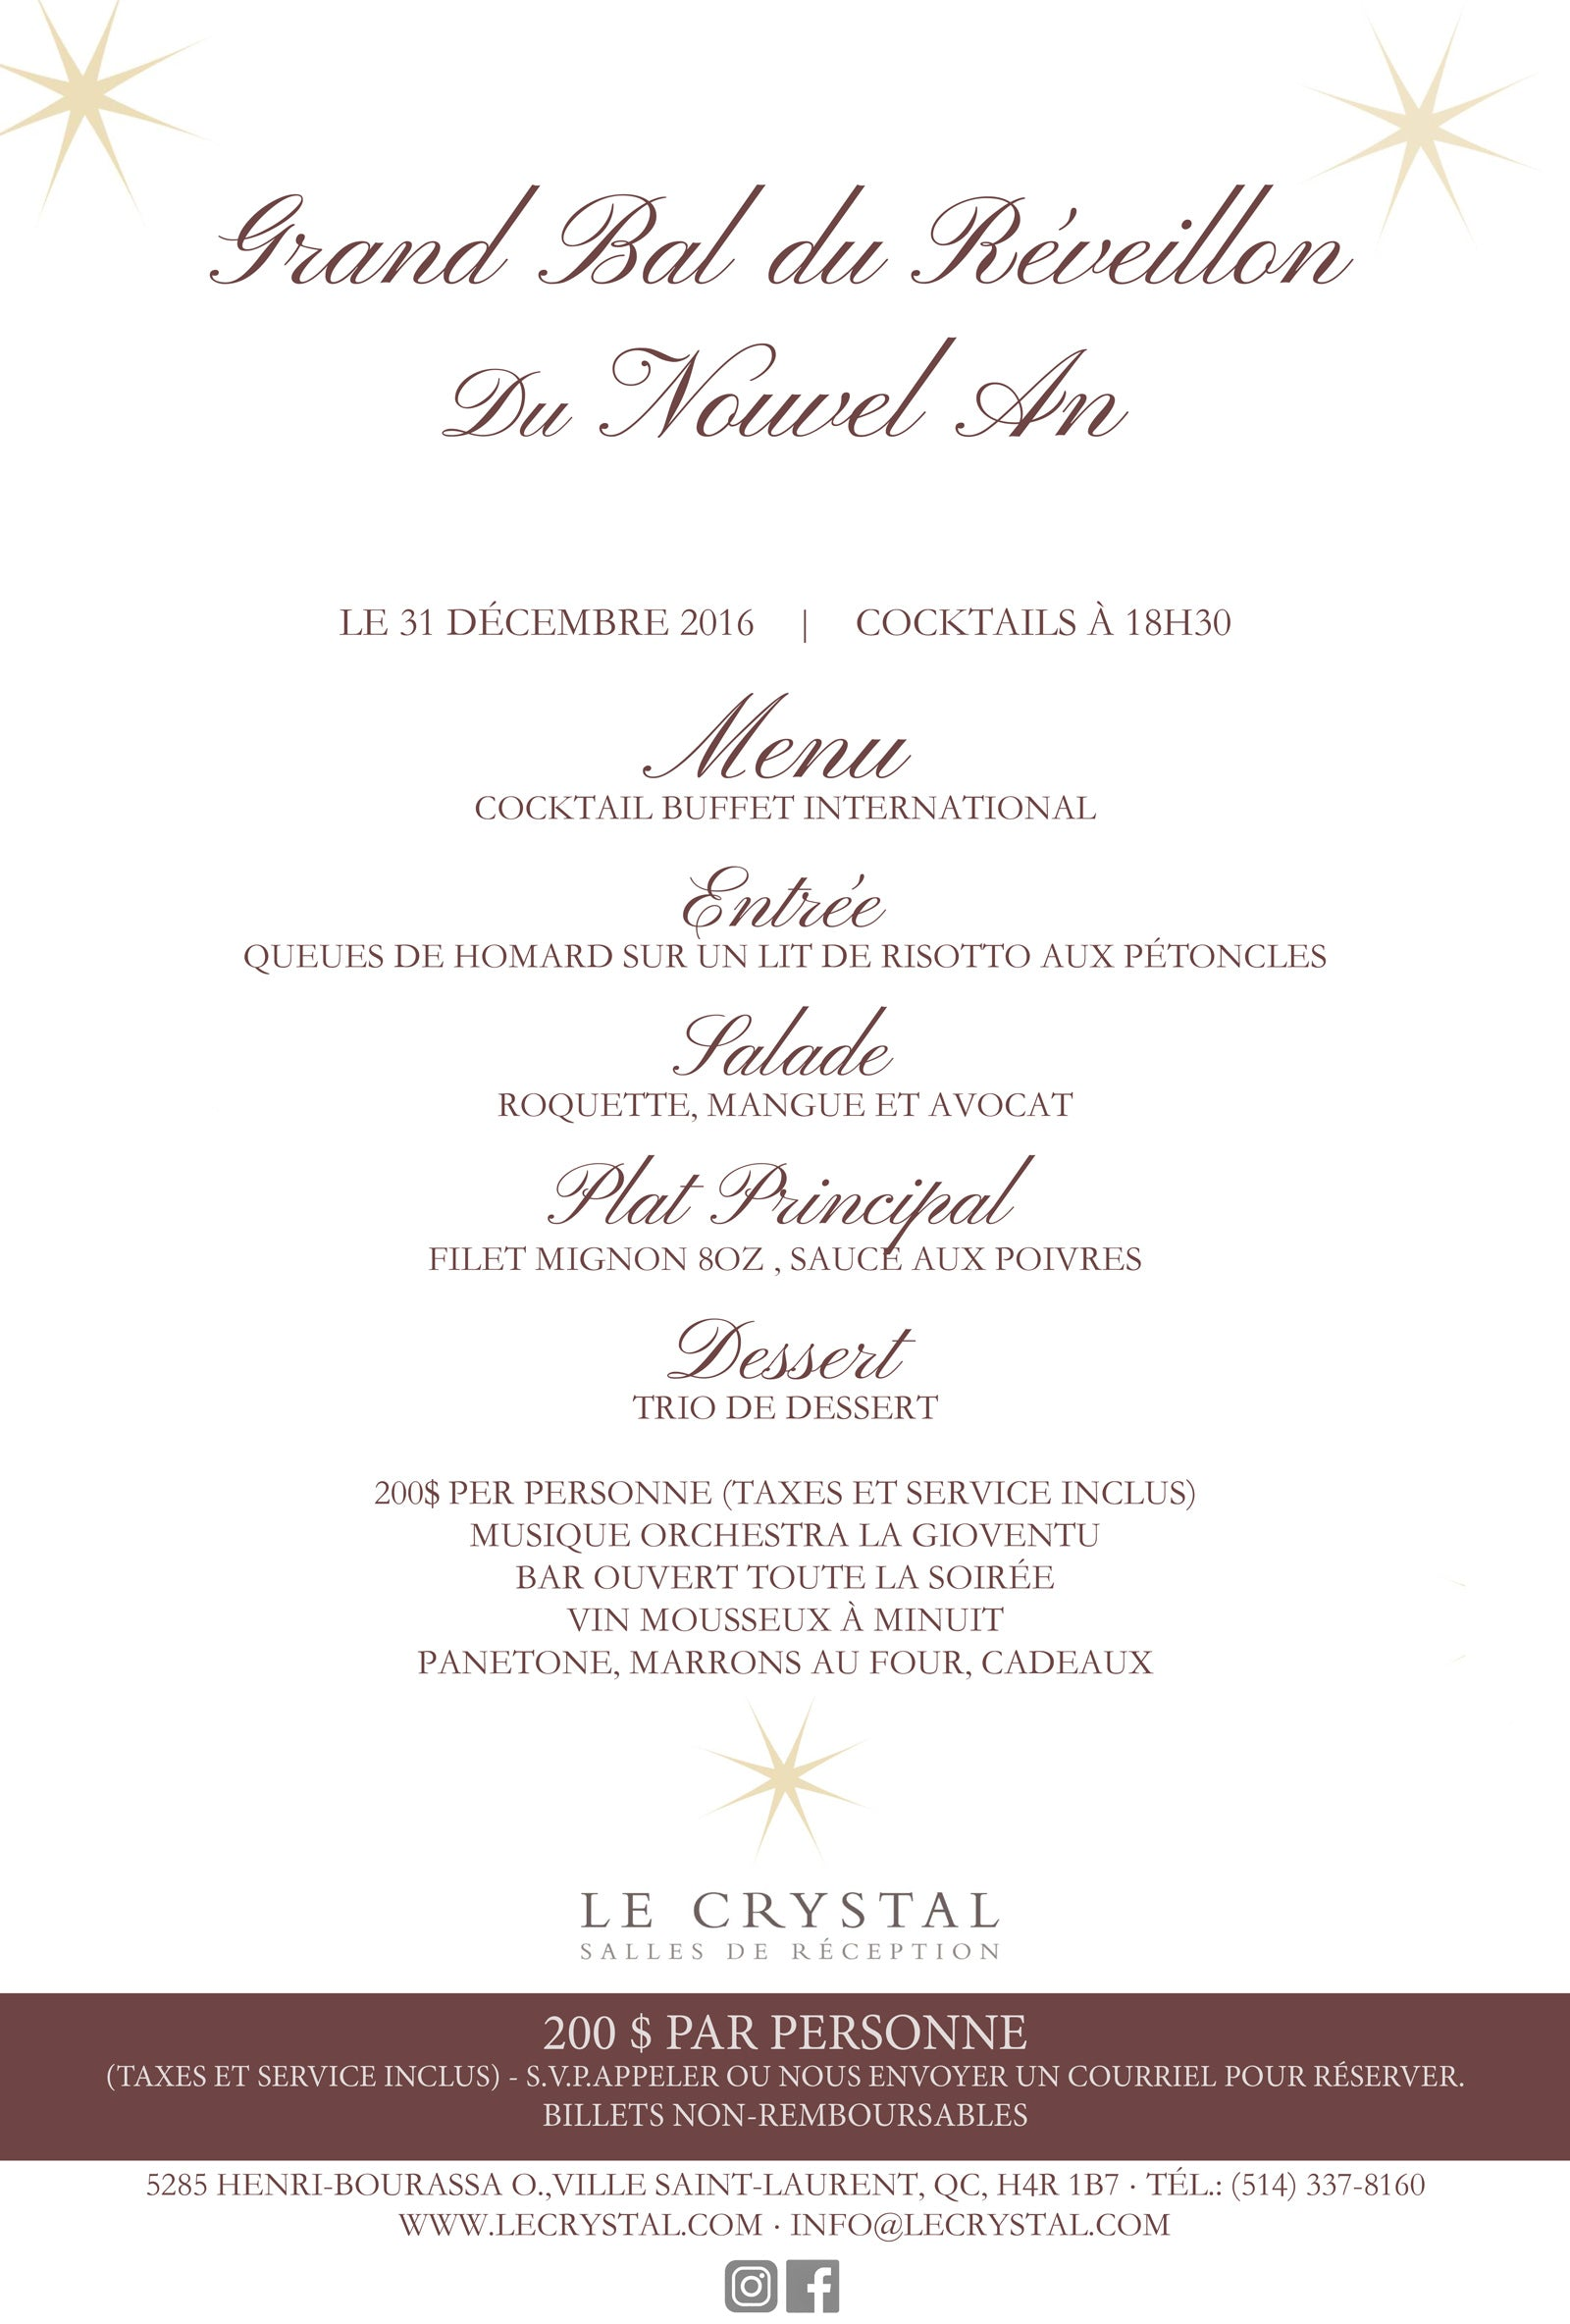 Le Crystal New Years Eve 2016